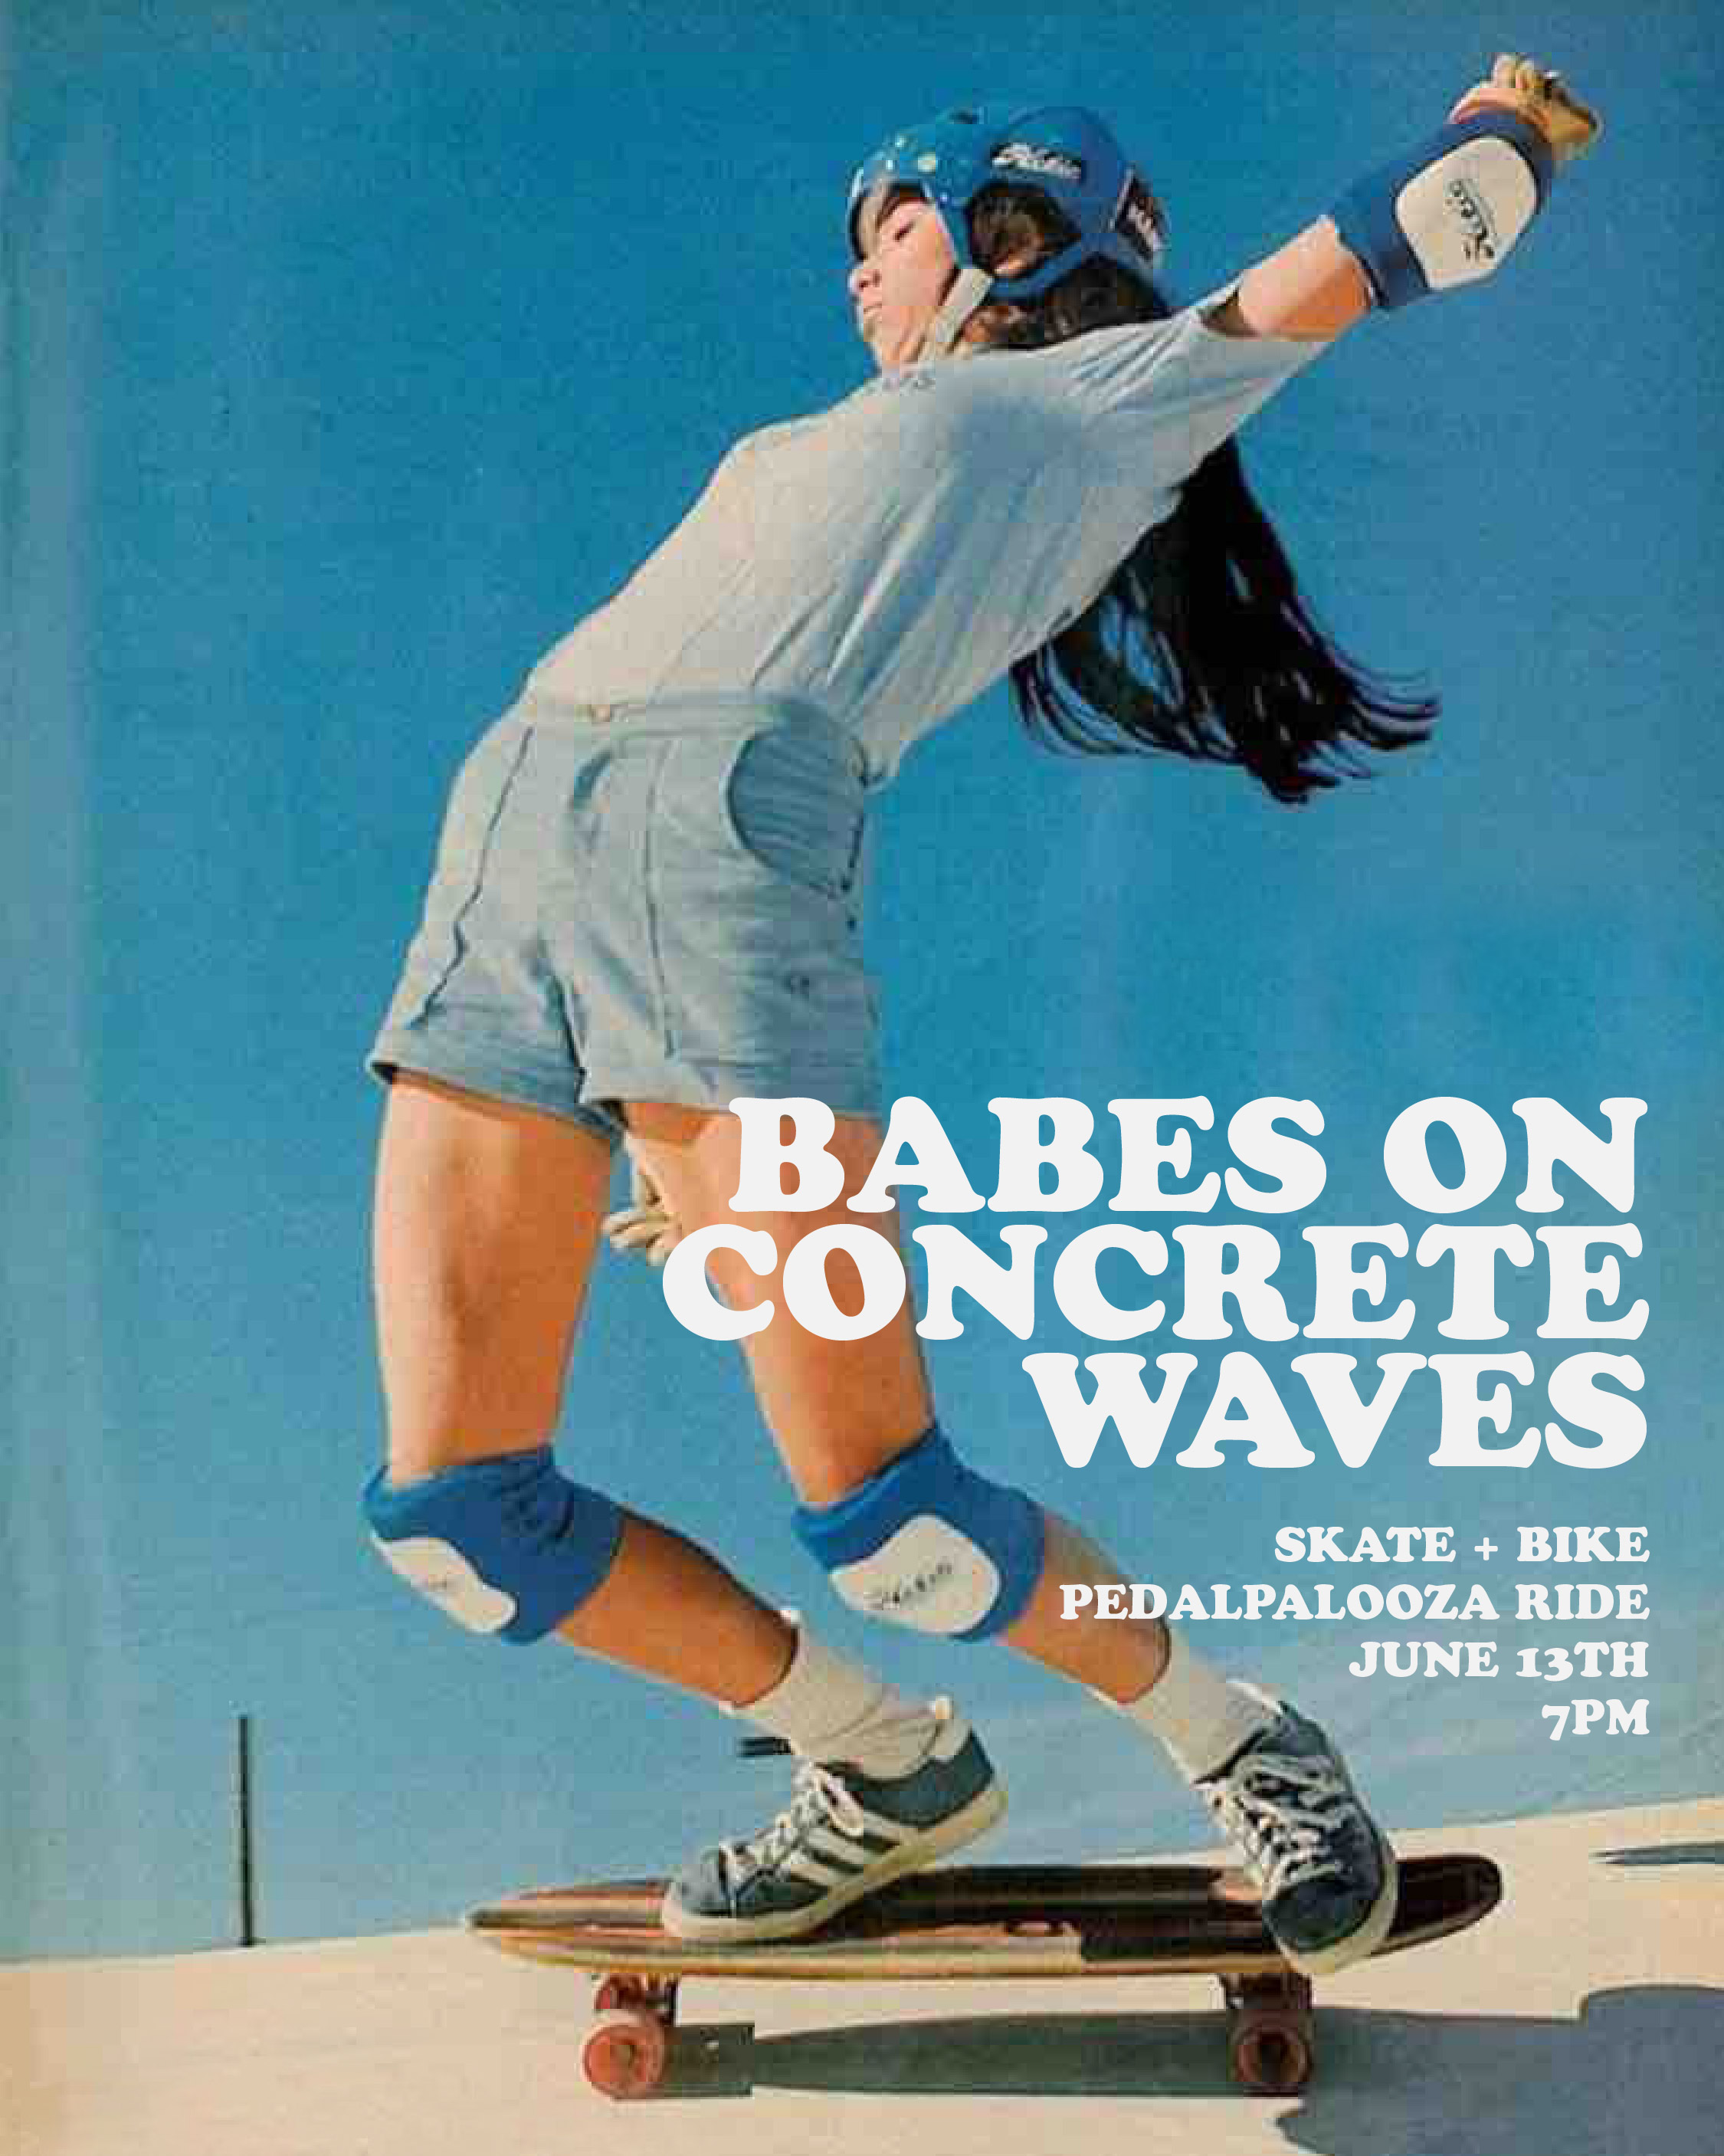 30bdc1c55e User-uploaded image for Babes on Concrete Waves